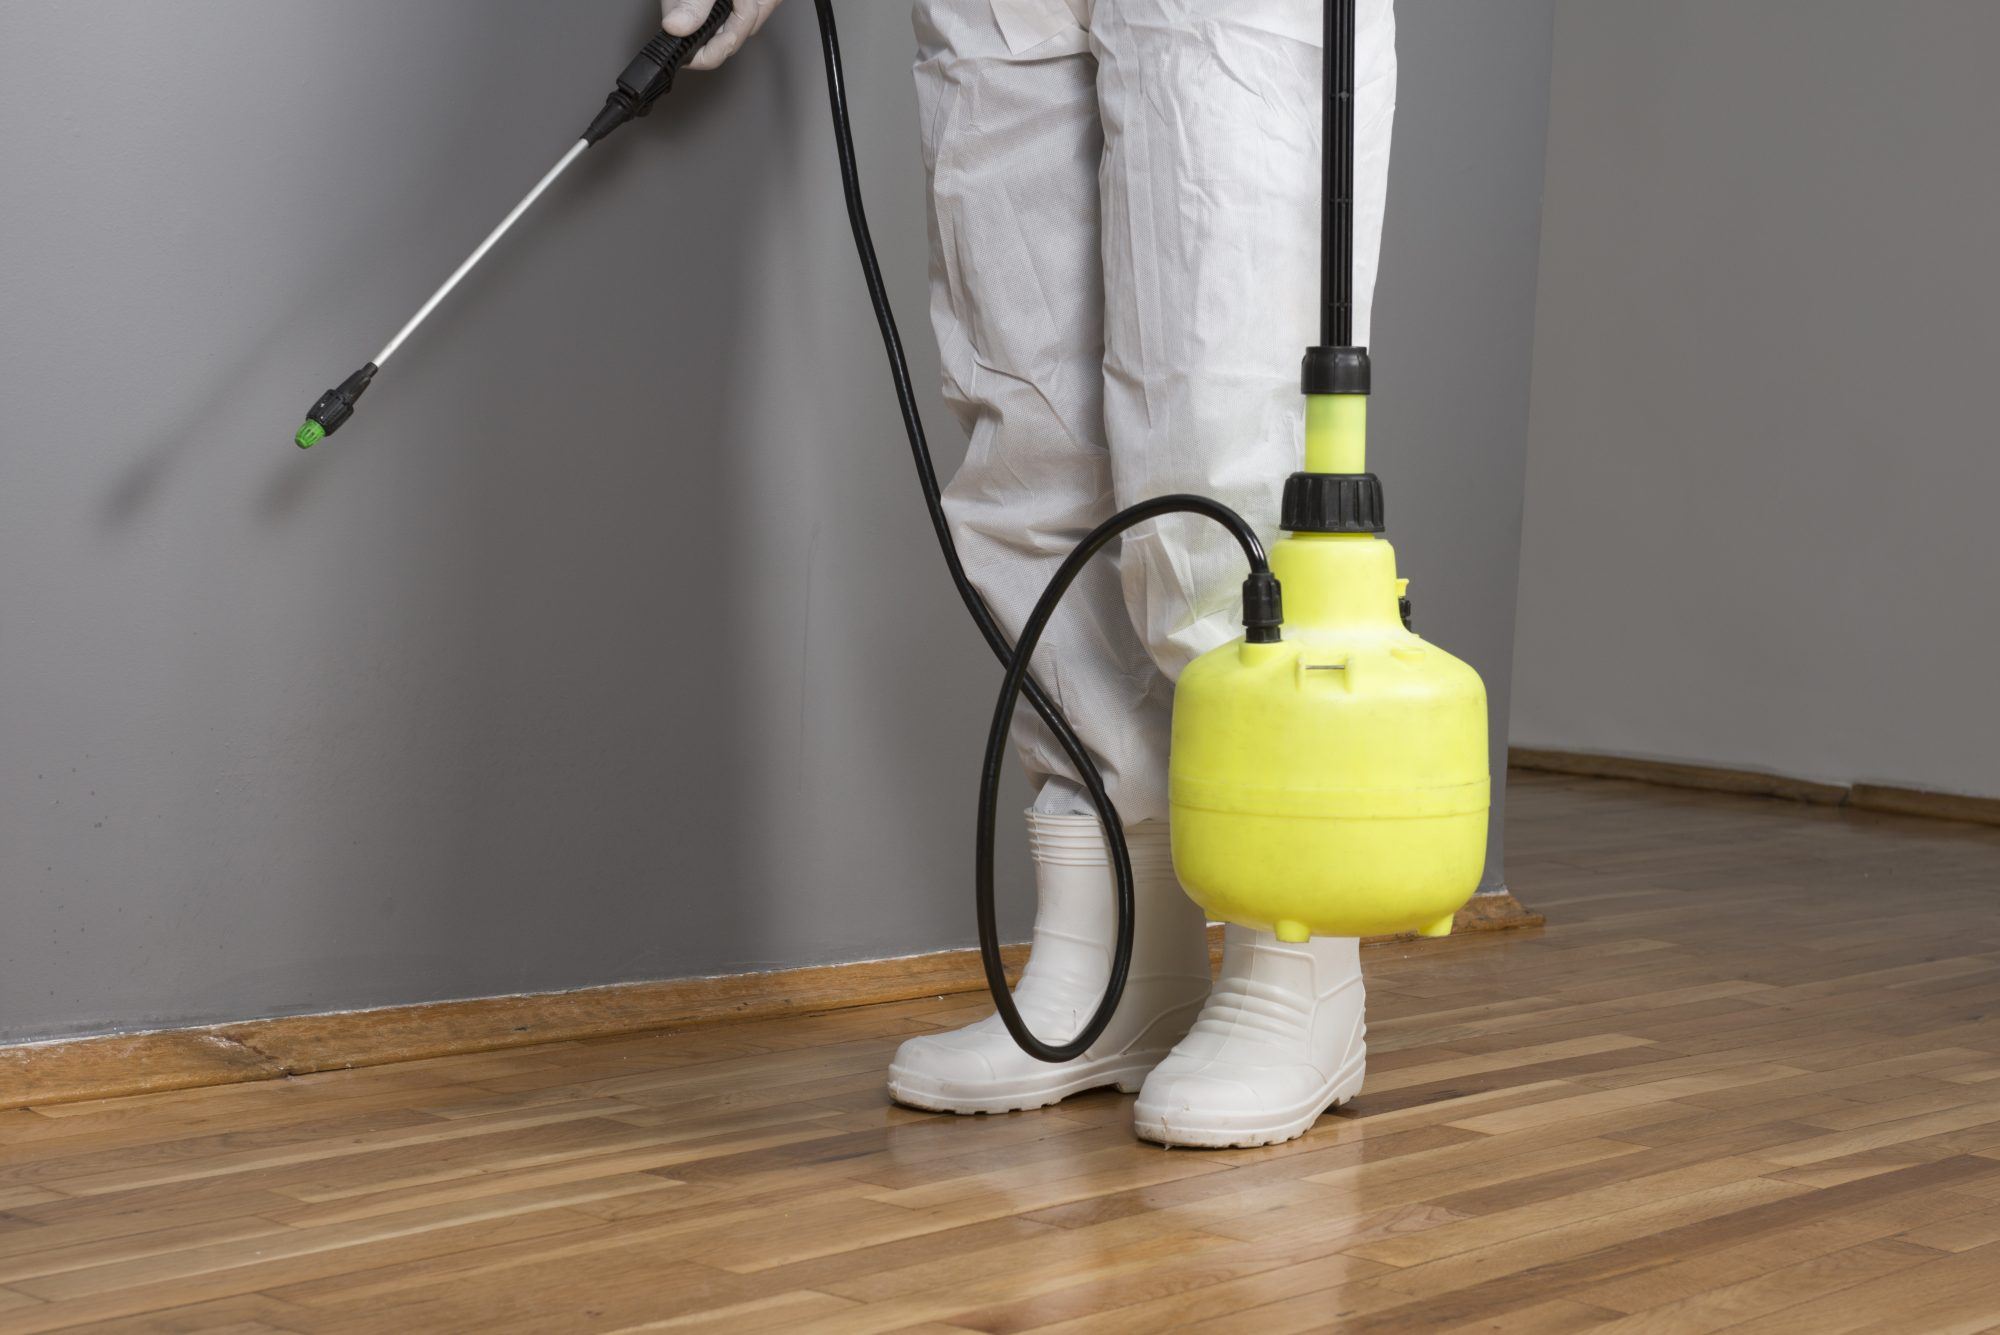 fumigate to remove bed bugs exterminator